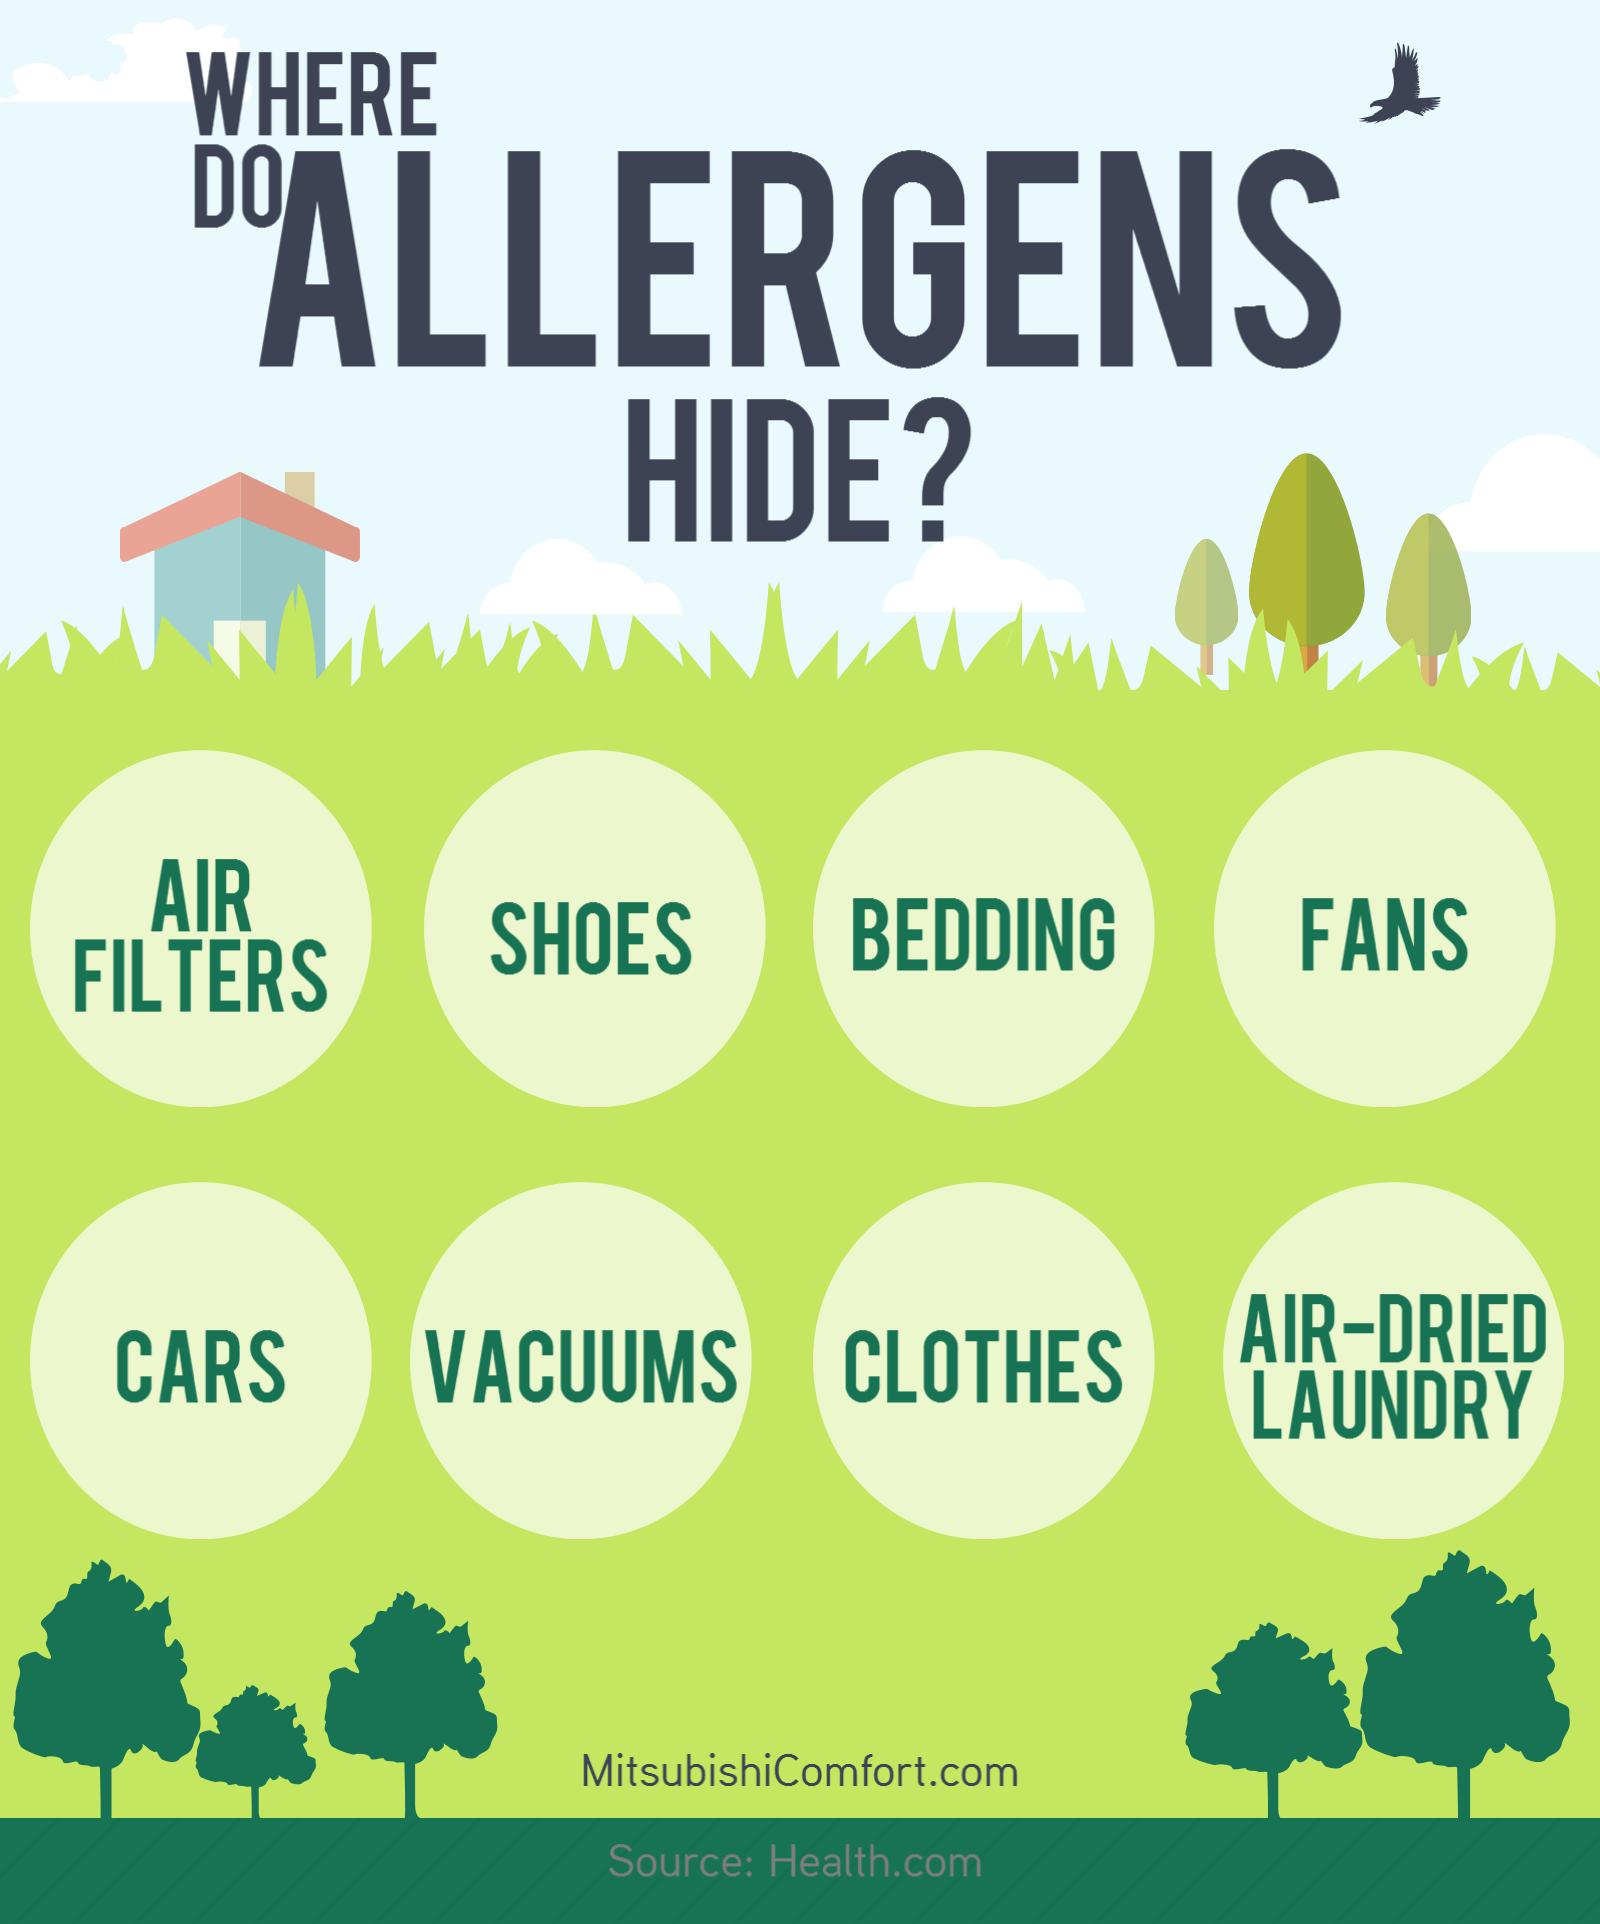 Where do allergens hide? Apparently everywhere! Make sure